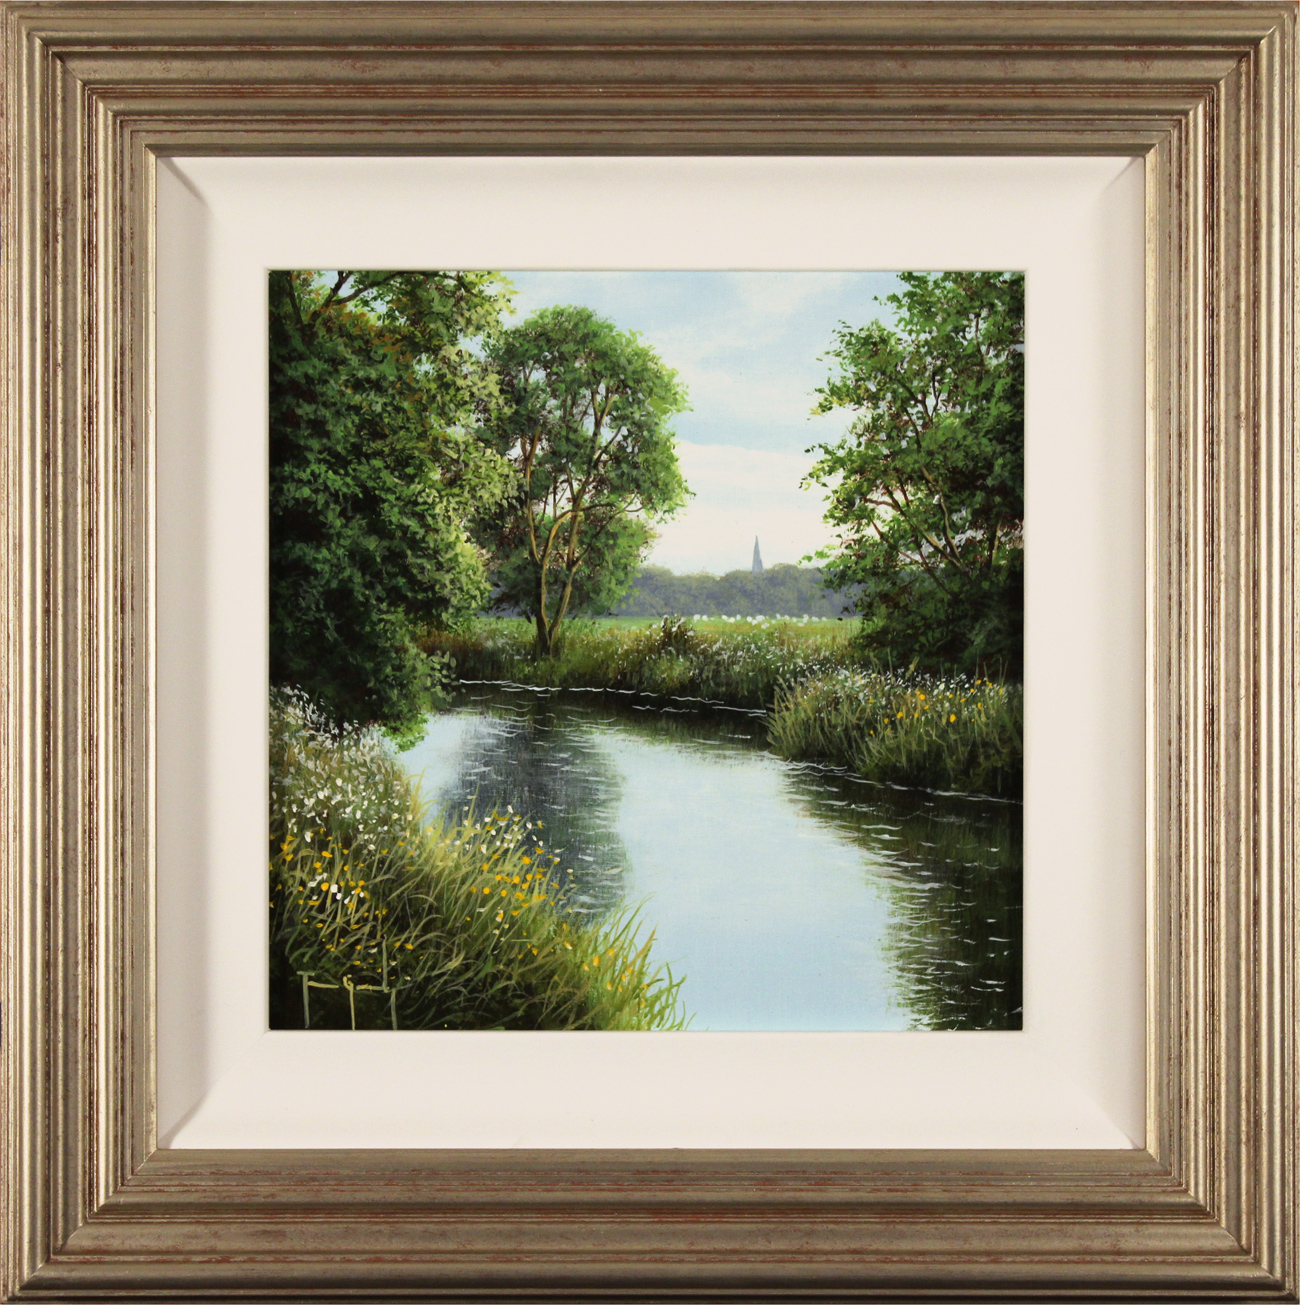 Terry Grundy, Original oil painting on panel, River Wharfe, North Yorkshire Click to enlarge